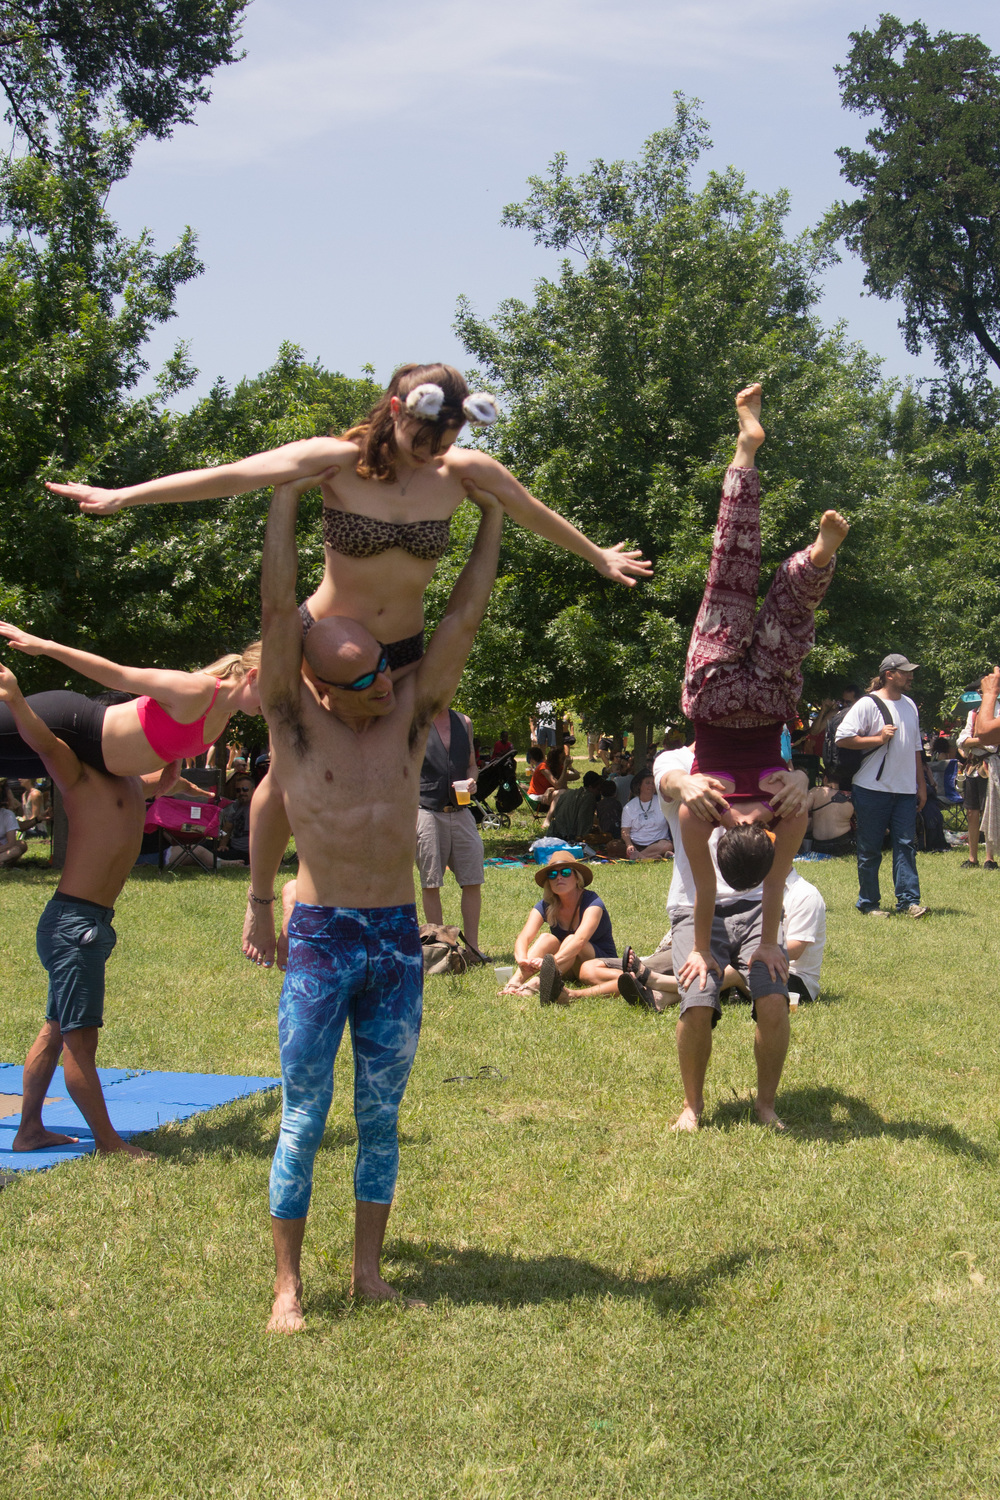 Participants in an acro-yoga demonstration.